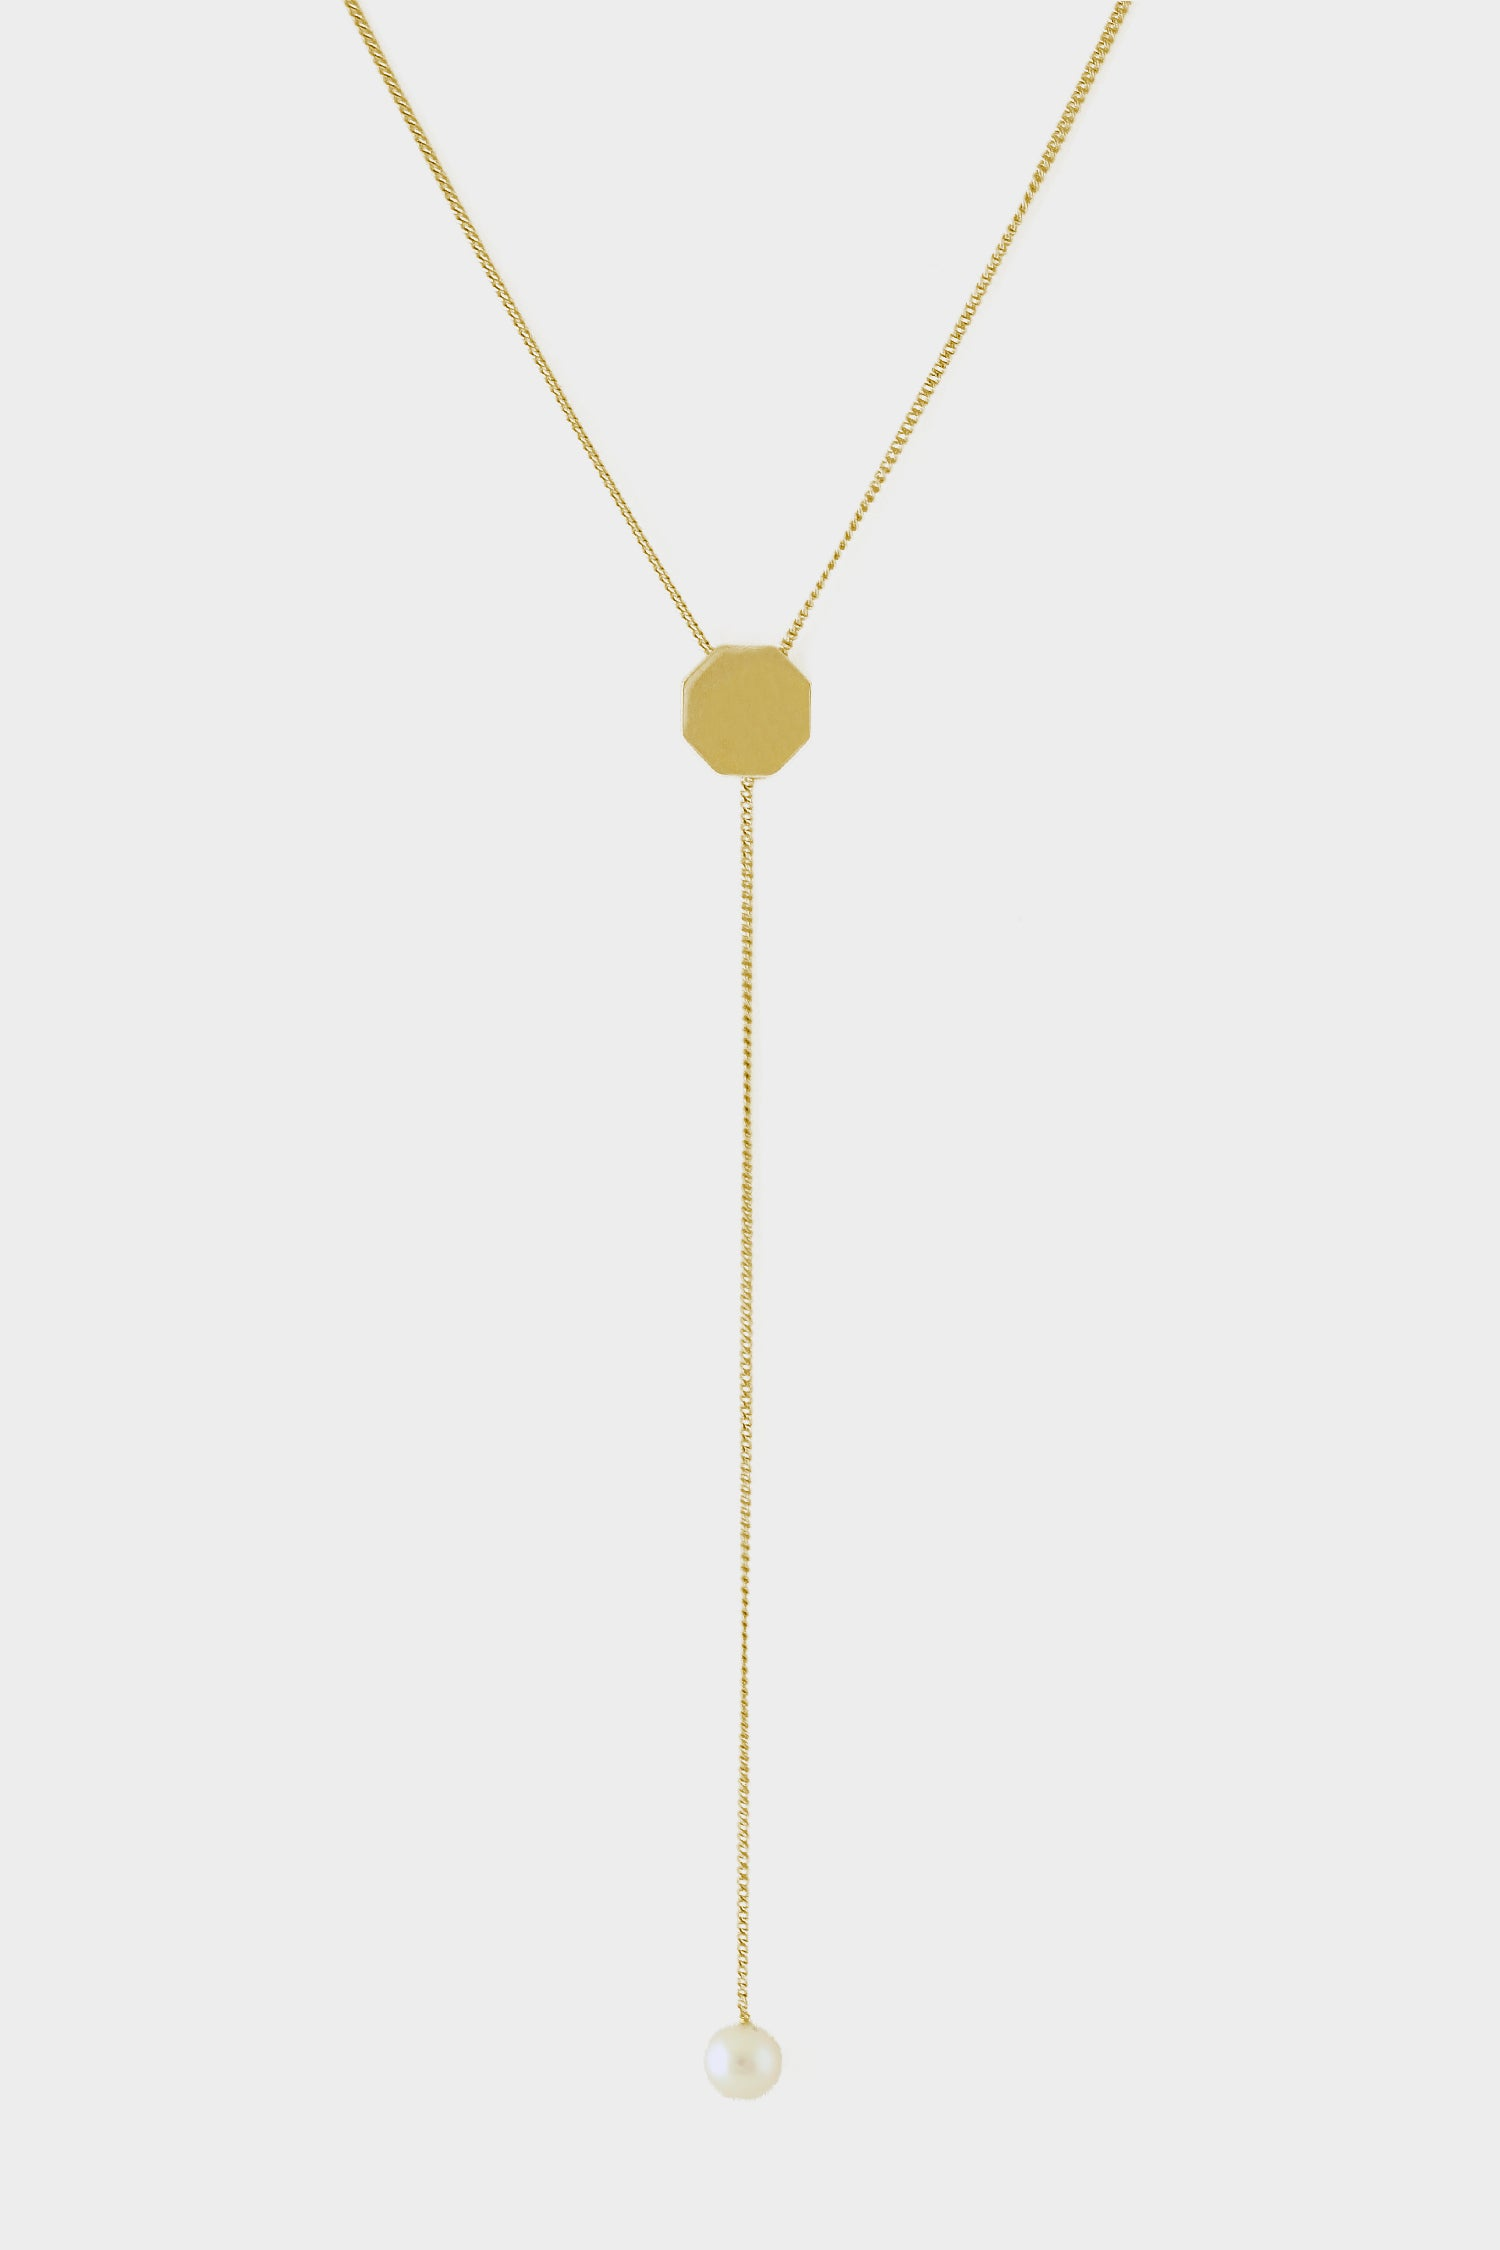 Octagon Lariat | 9K Yellow Gold